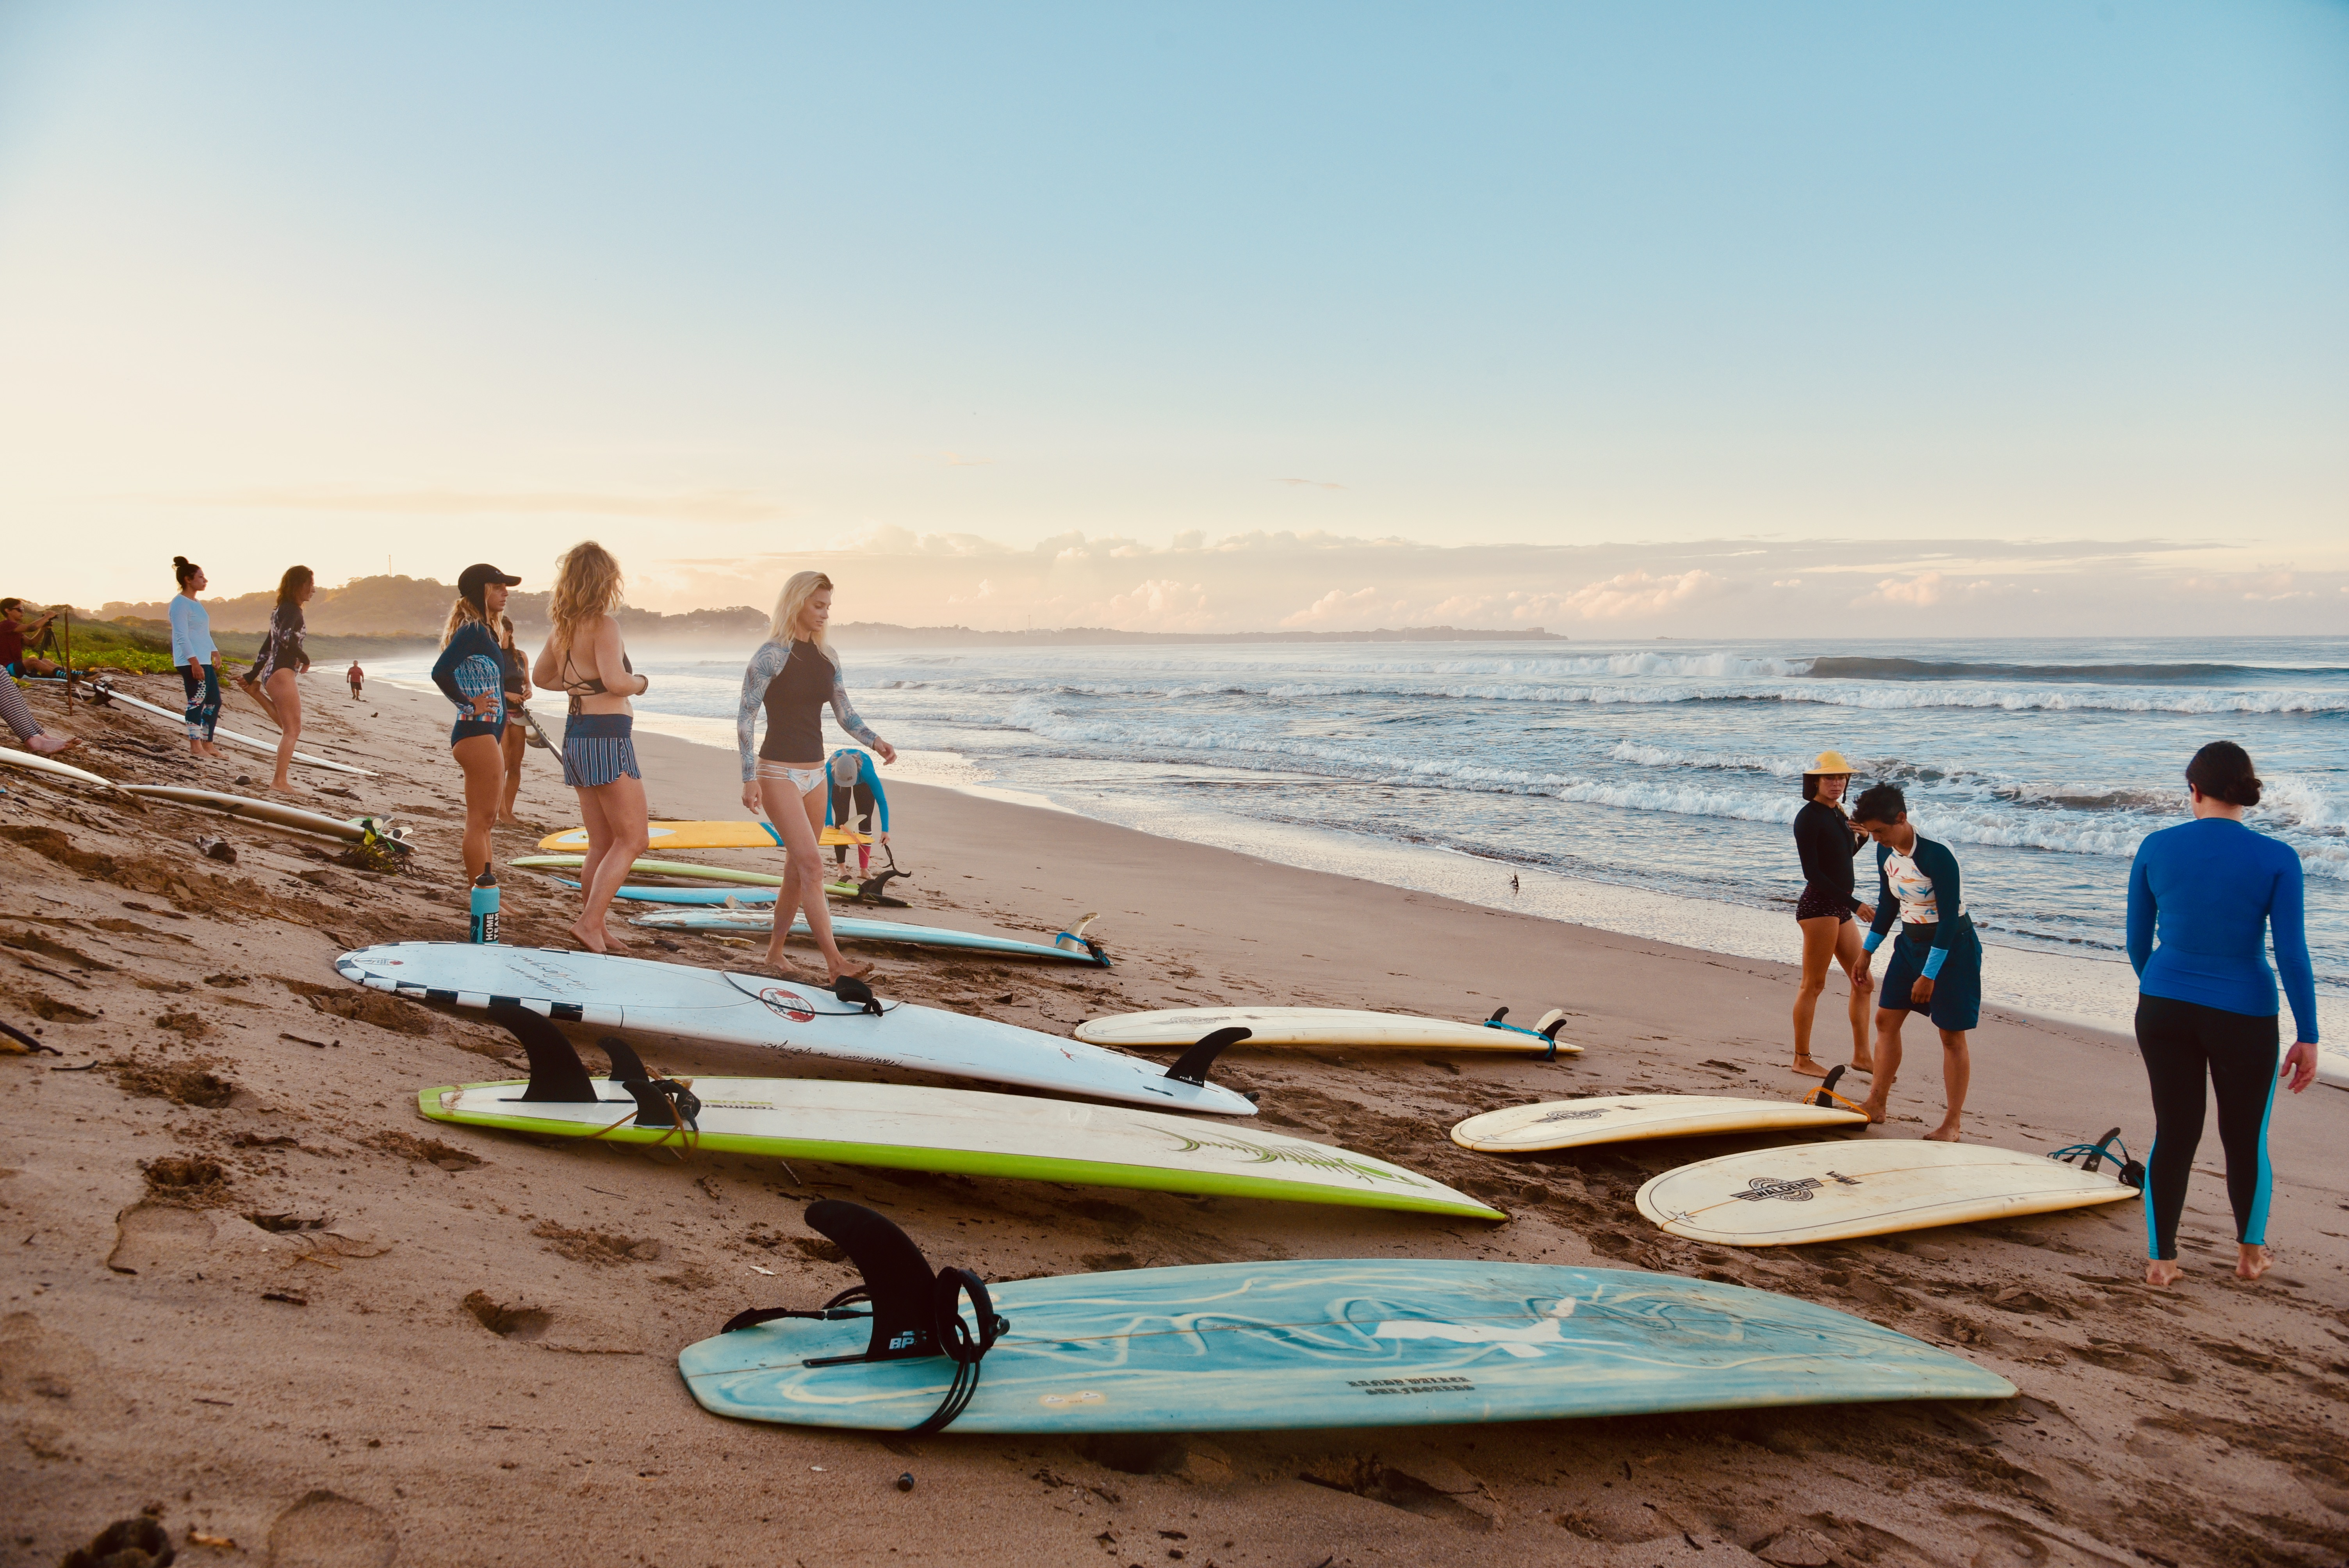 surf with amigas, playa grande, learn to surf, sunrise, beach, girls surfing